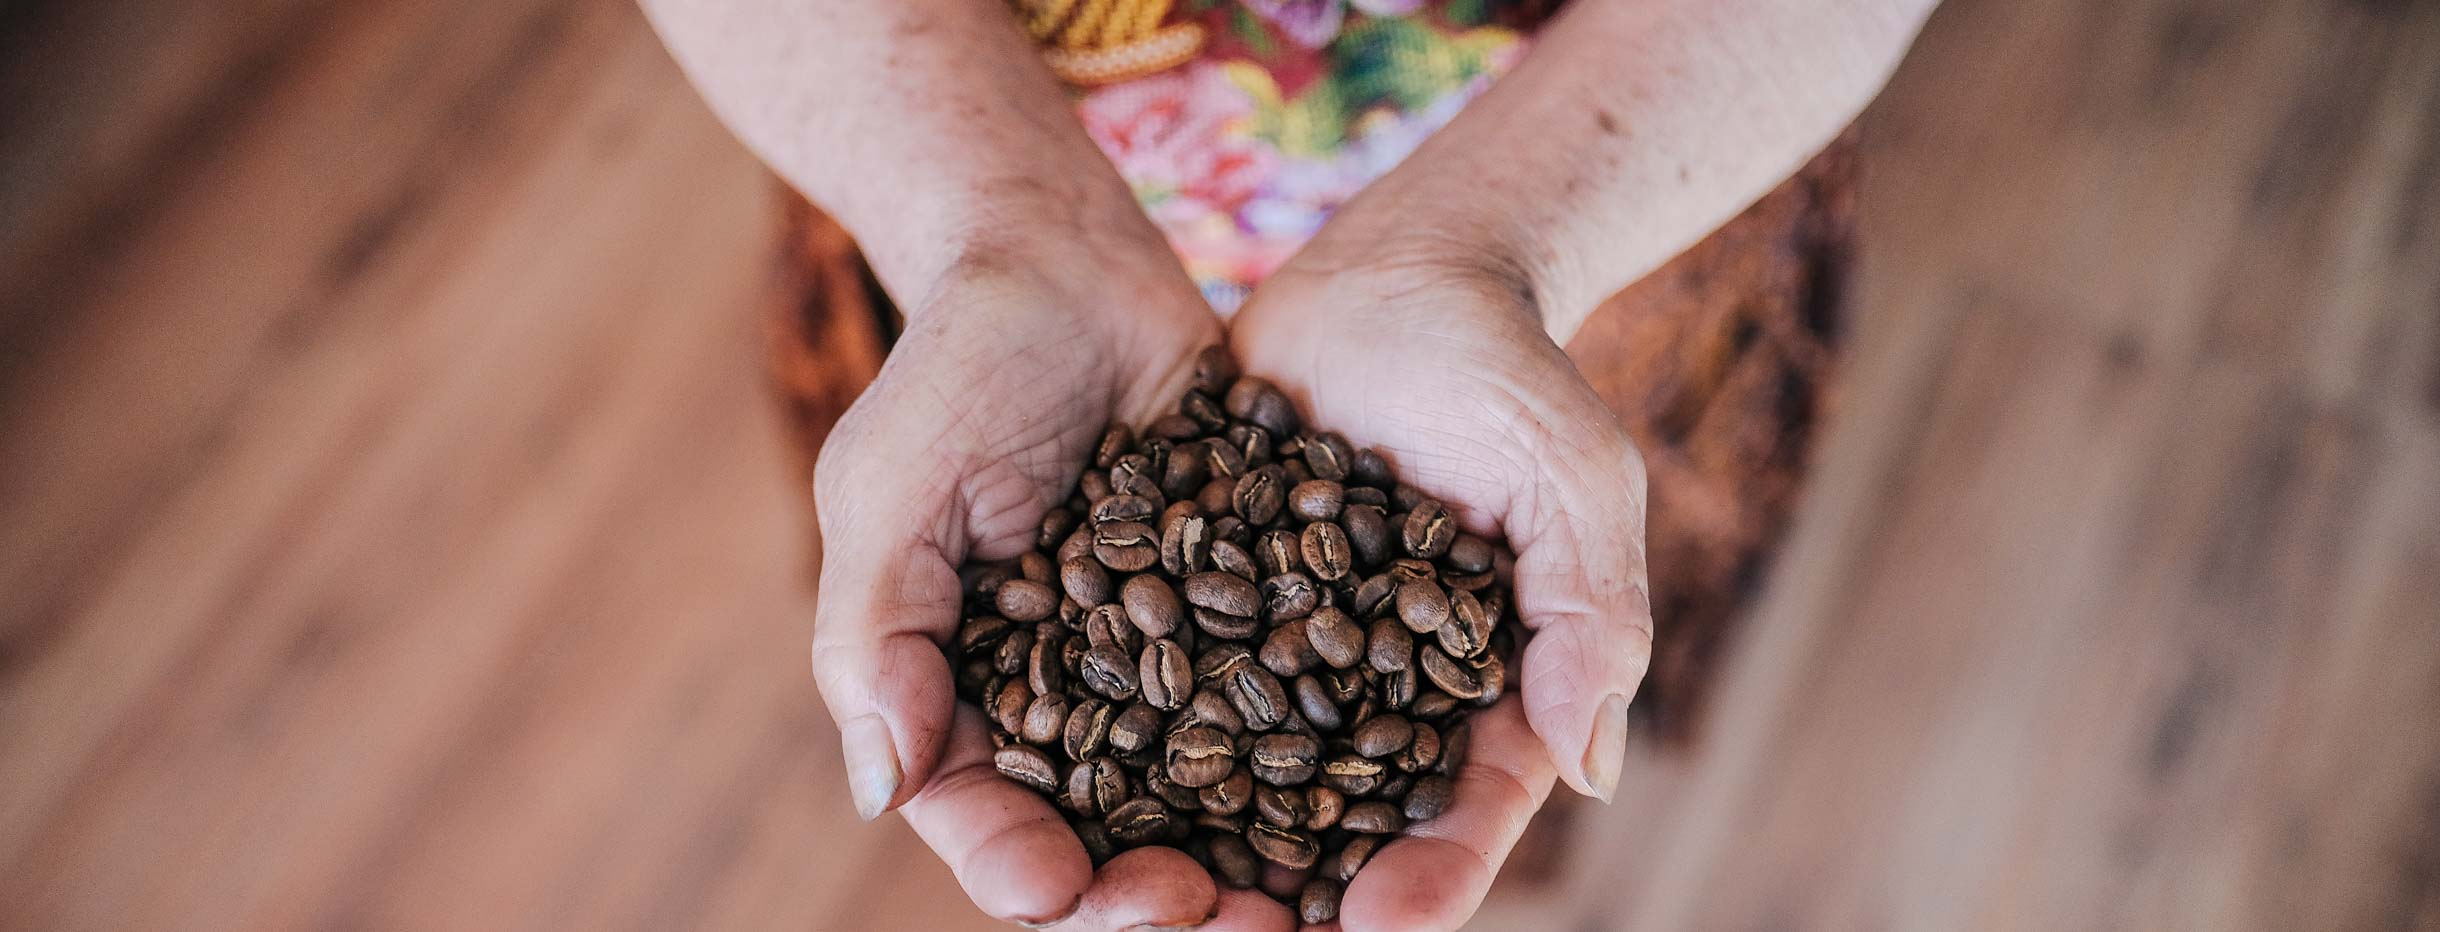 Guatemalan woman holding roasted coffee beans in her hands